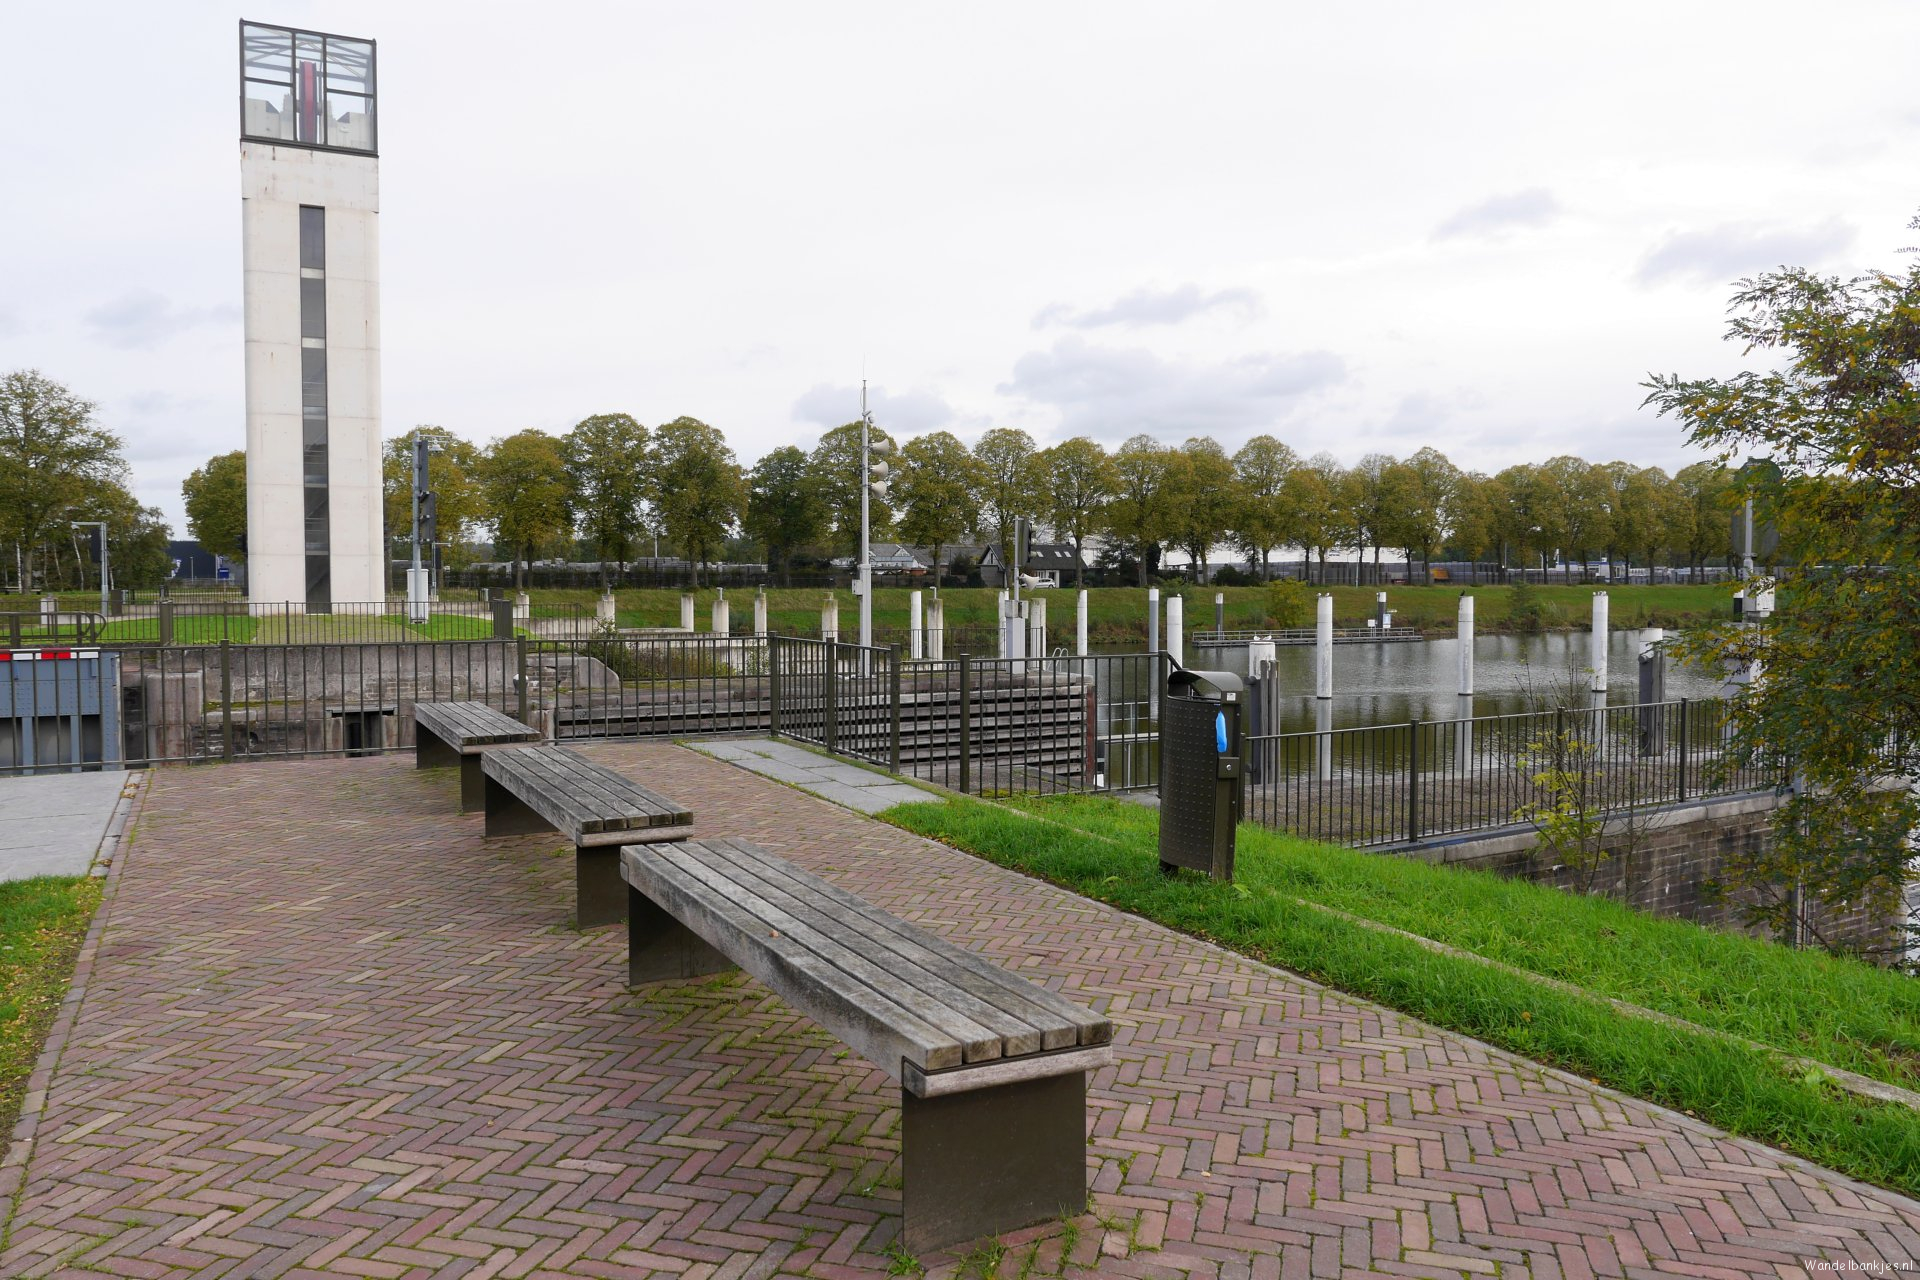 rt-arthurskm-for-walking benches-and-walkersbenches-at-the-lock-in-heumen-south-of-nijmegen-https-t-co-taflfj9j61